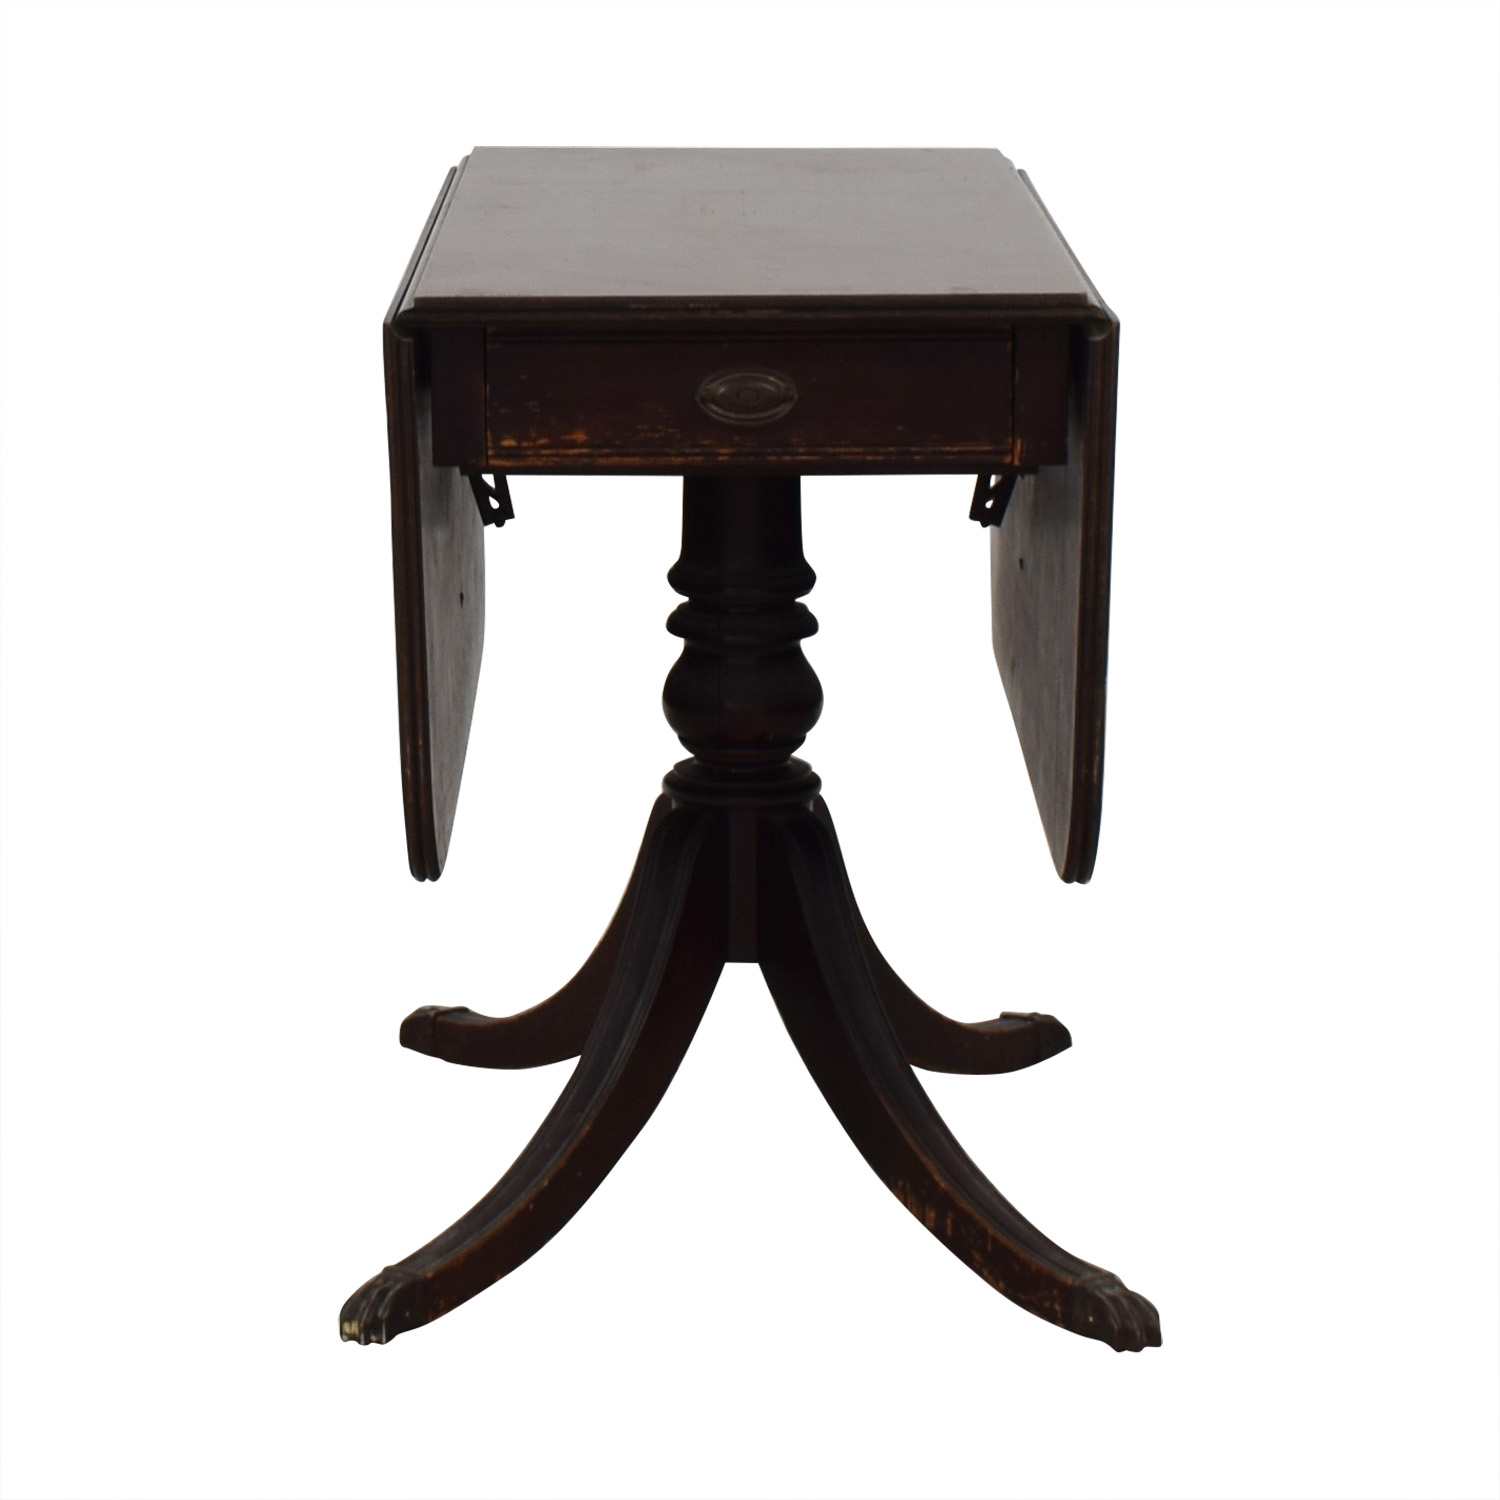 Brandt Vintage Drop-Leaf Dining Table / Dinner Tables